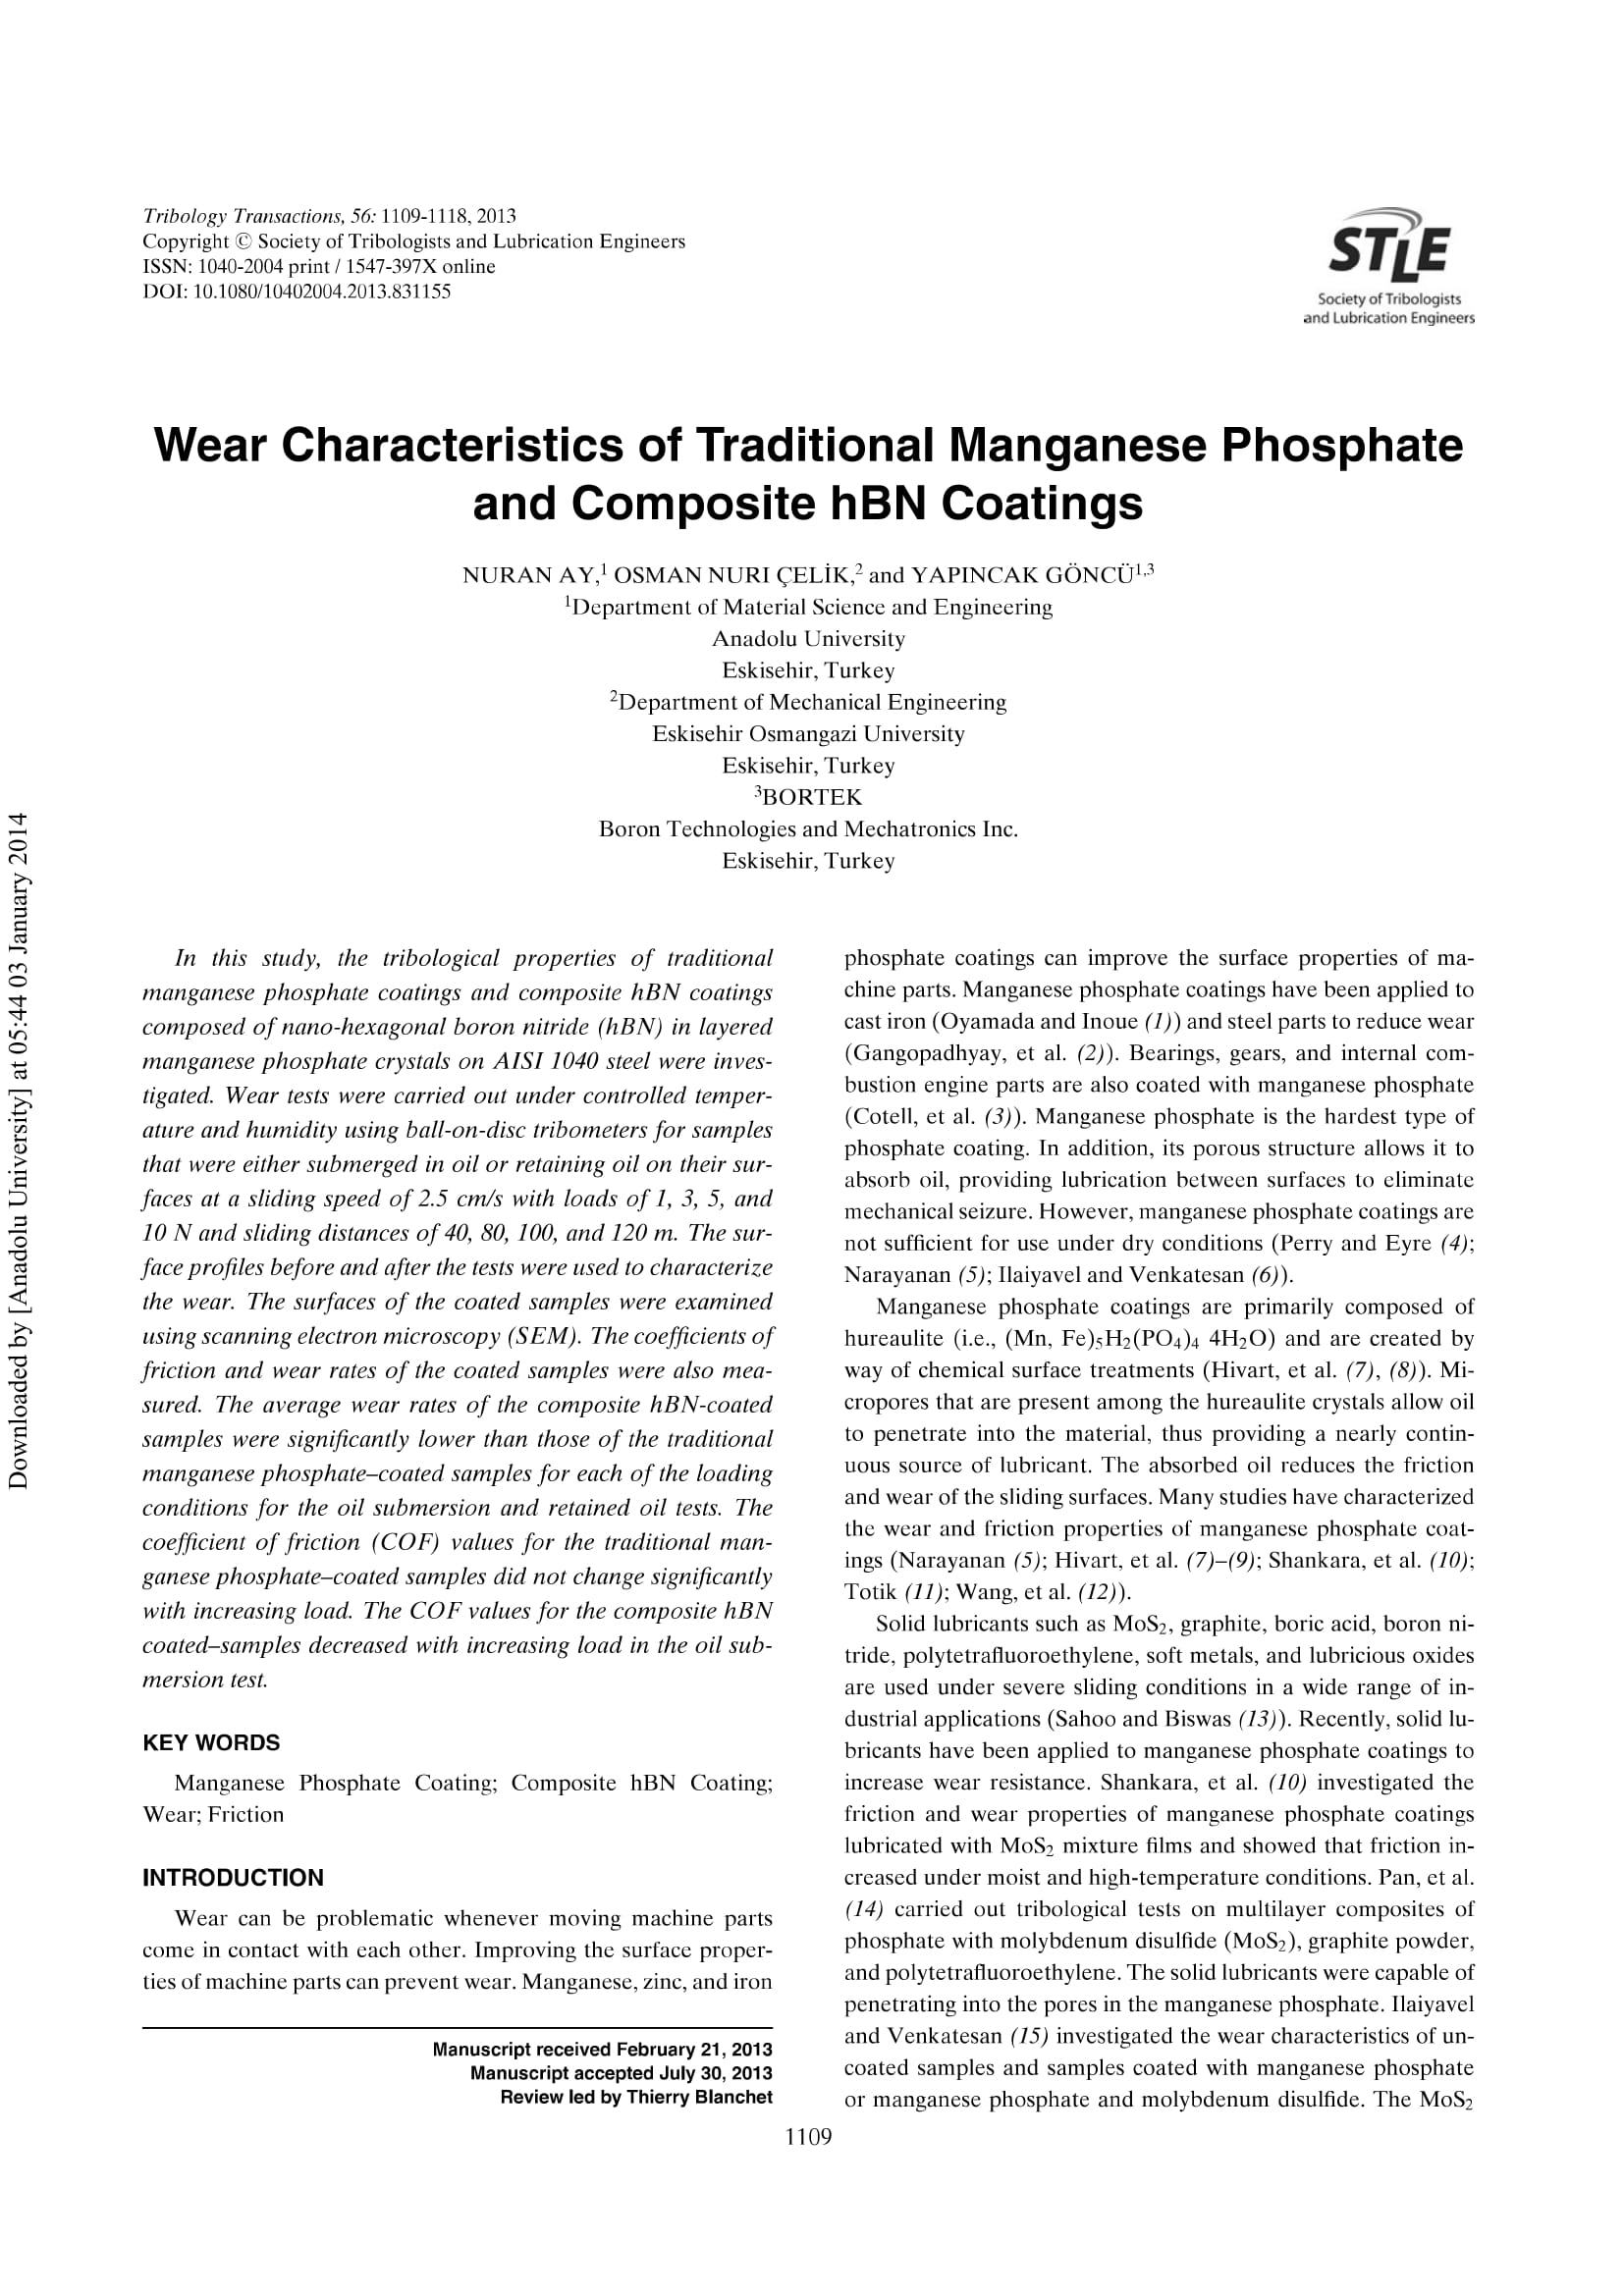 Wear Characteristics of Traditional Manganese